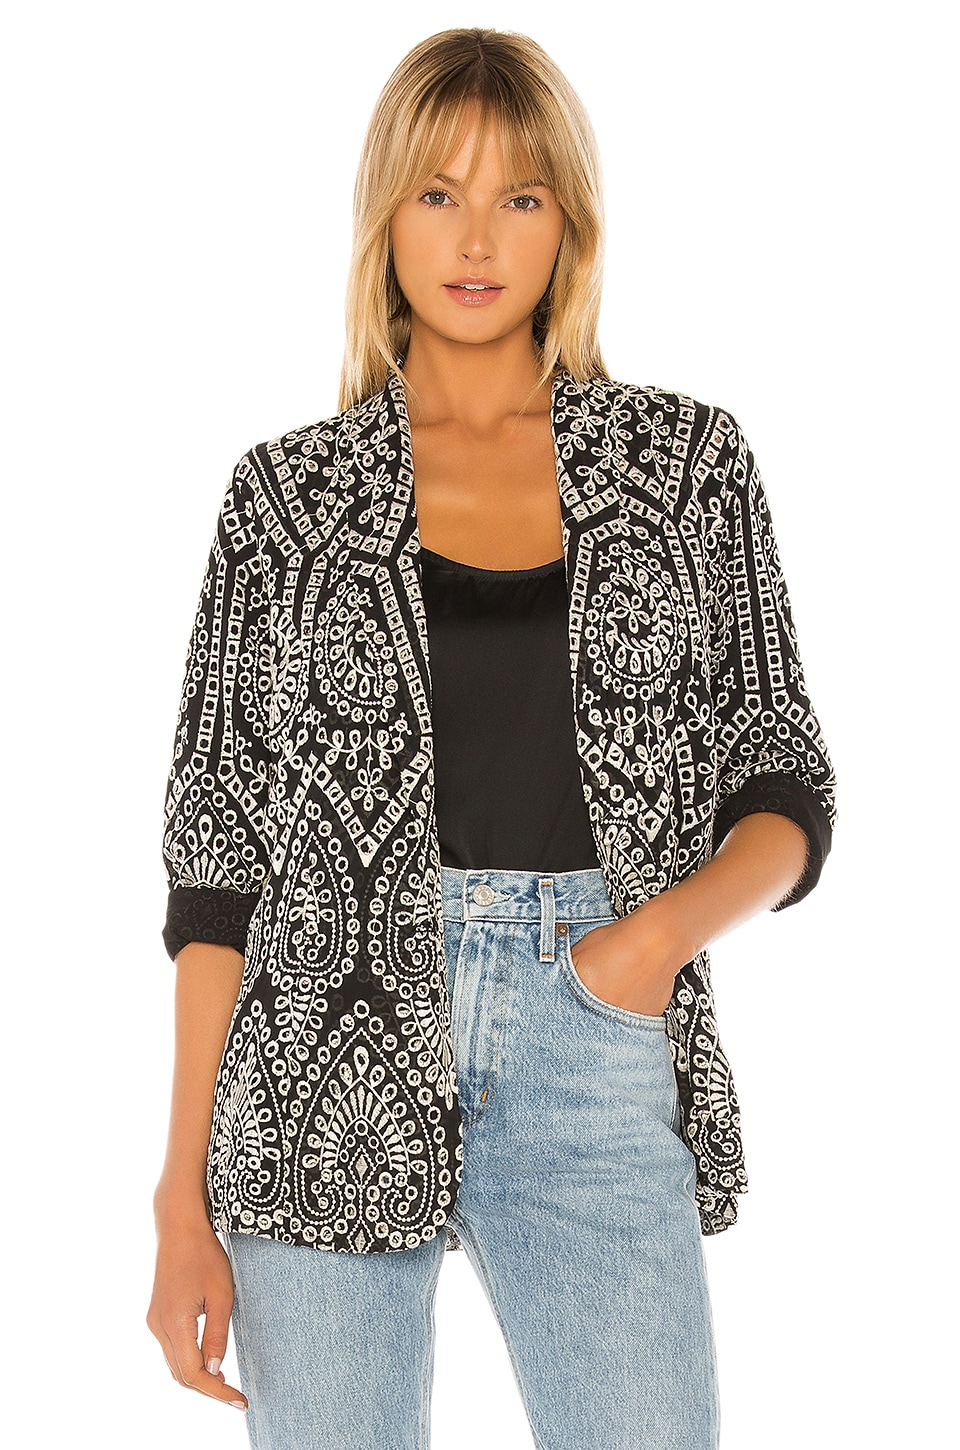 Jen's Pirate Booty Costa Del Sol Jacket in Marble Mariachi Eyelet